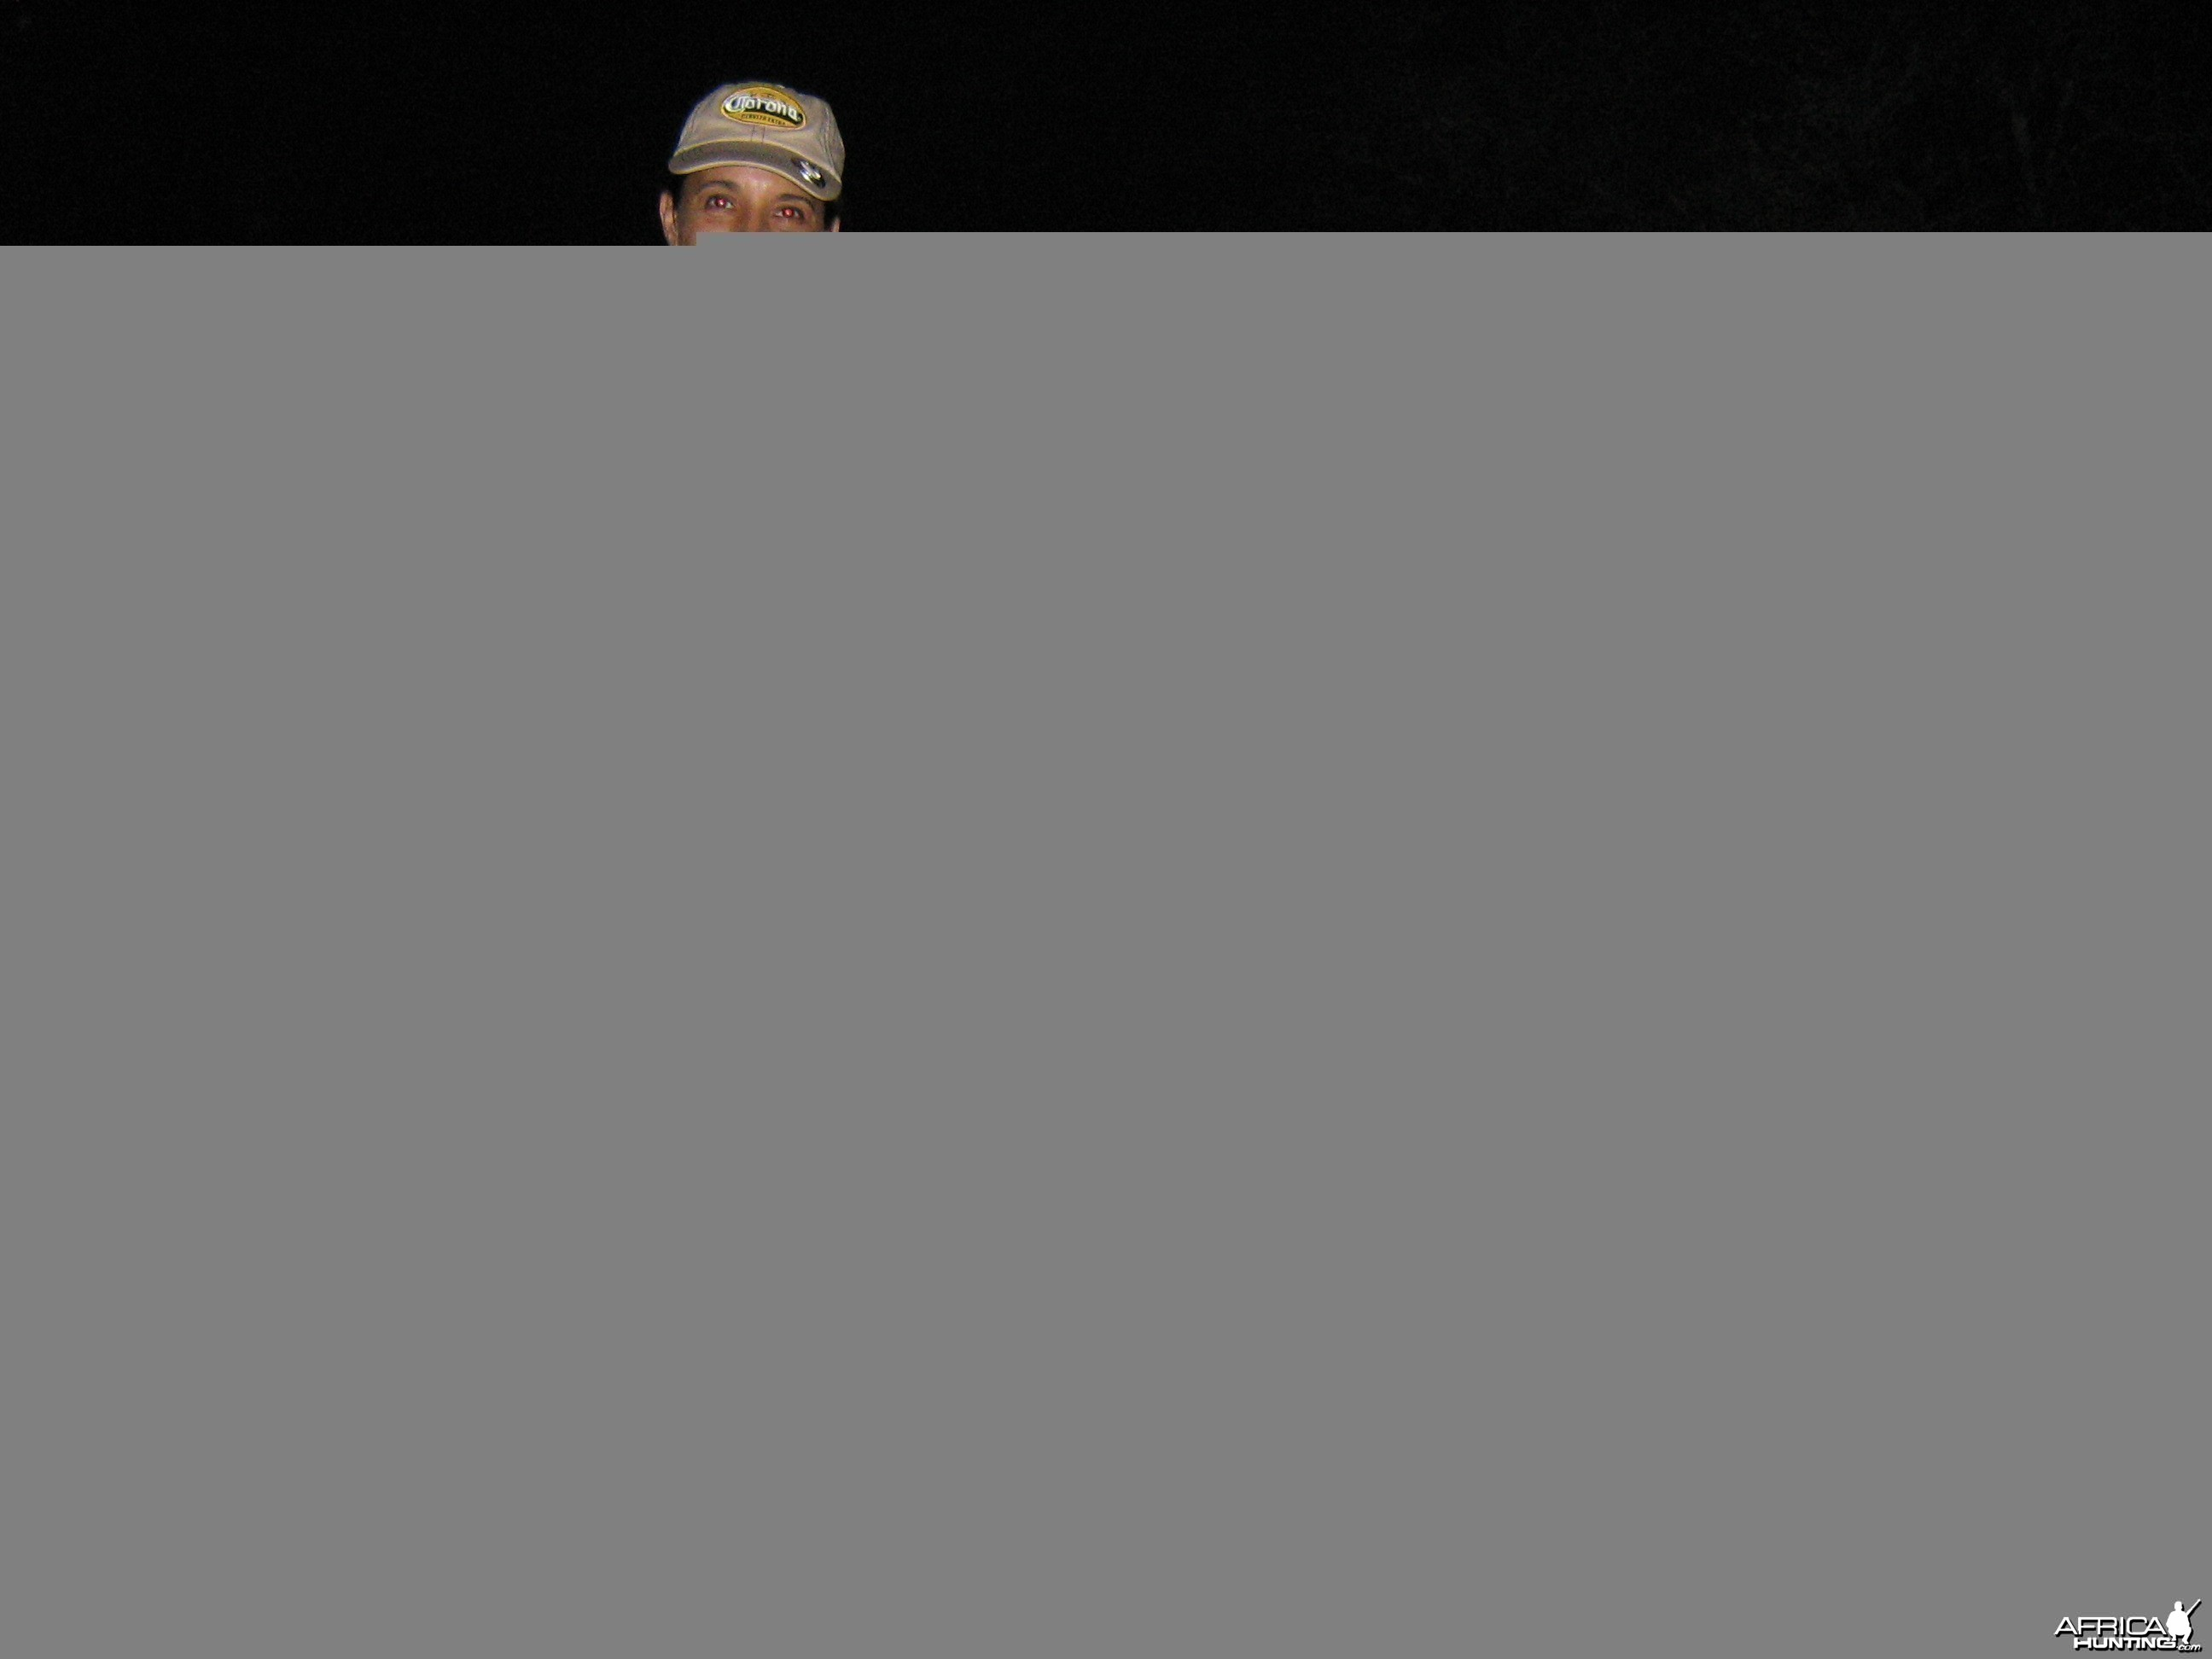 Hunting Bush Pig with Wintershoek Johnny Vivier Safaris in SA